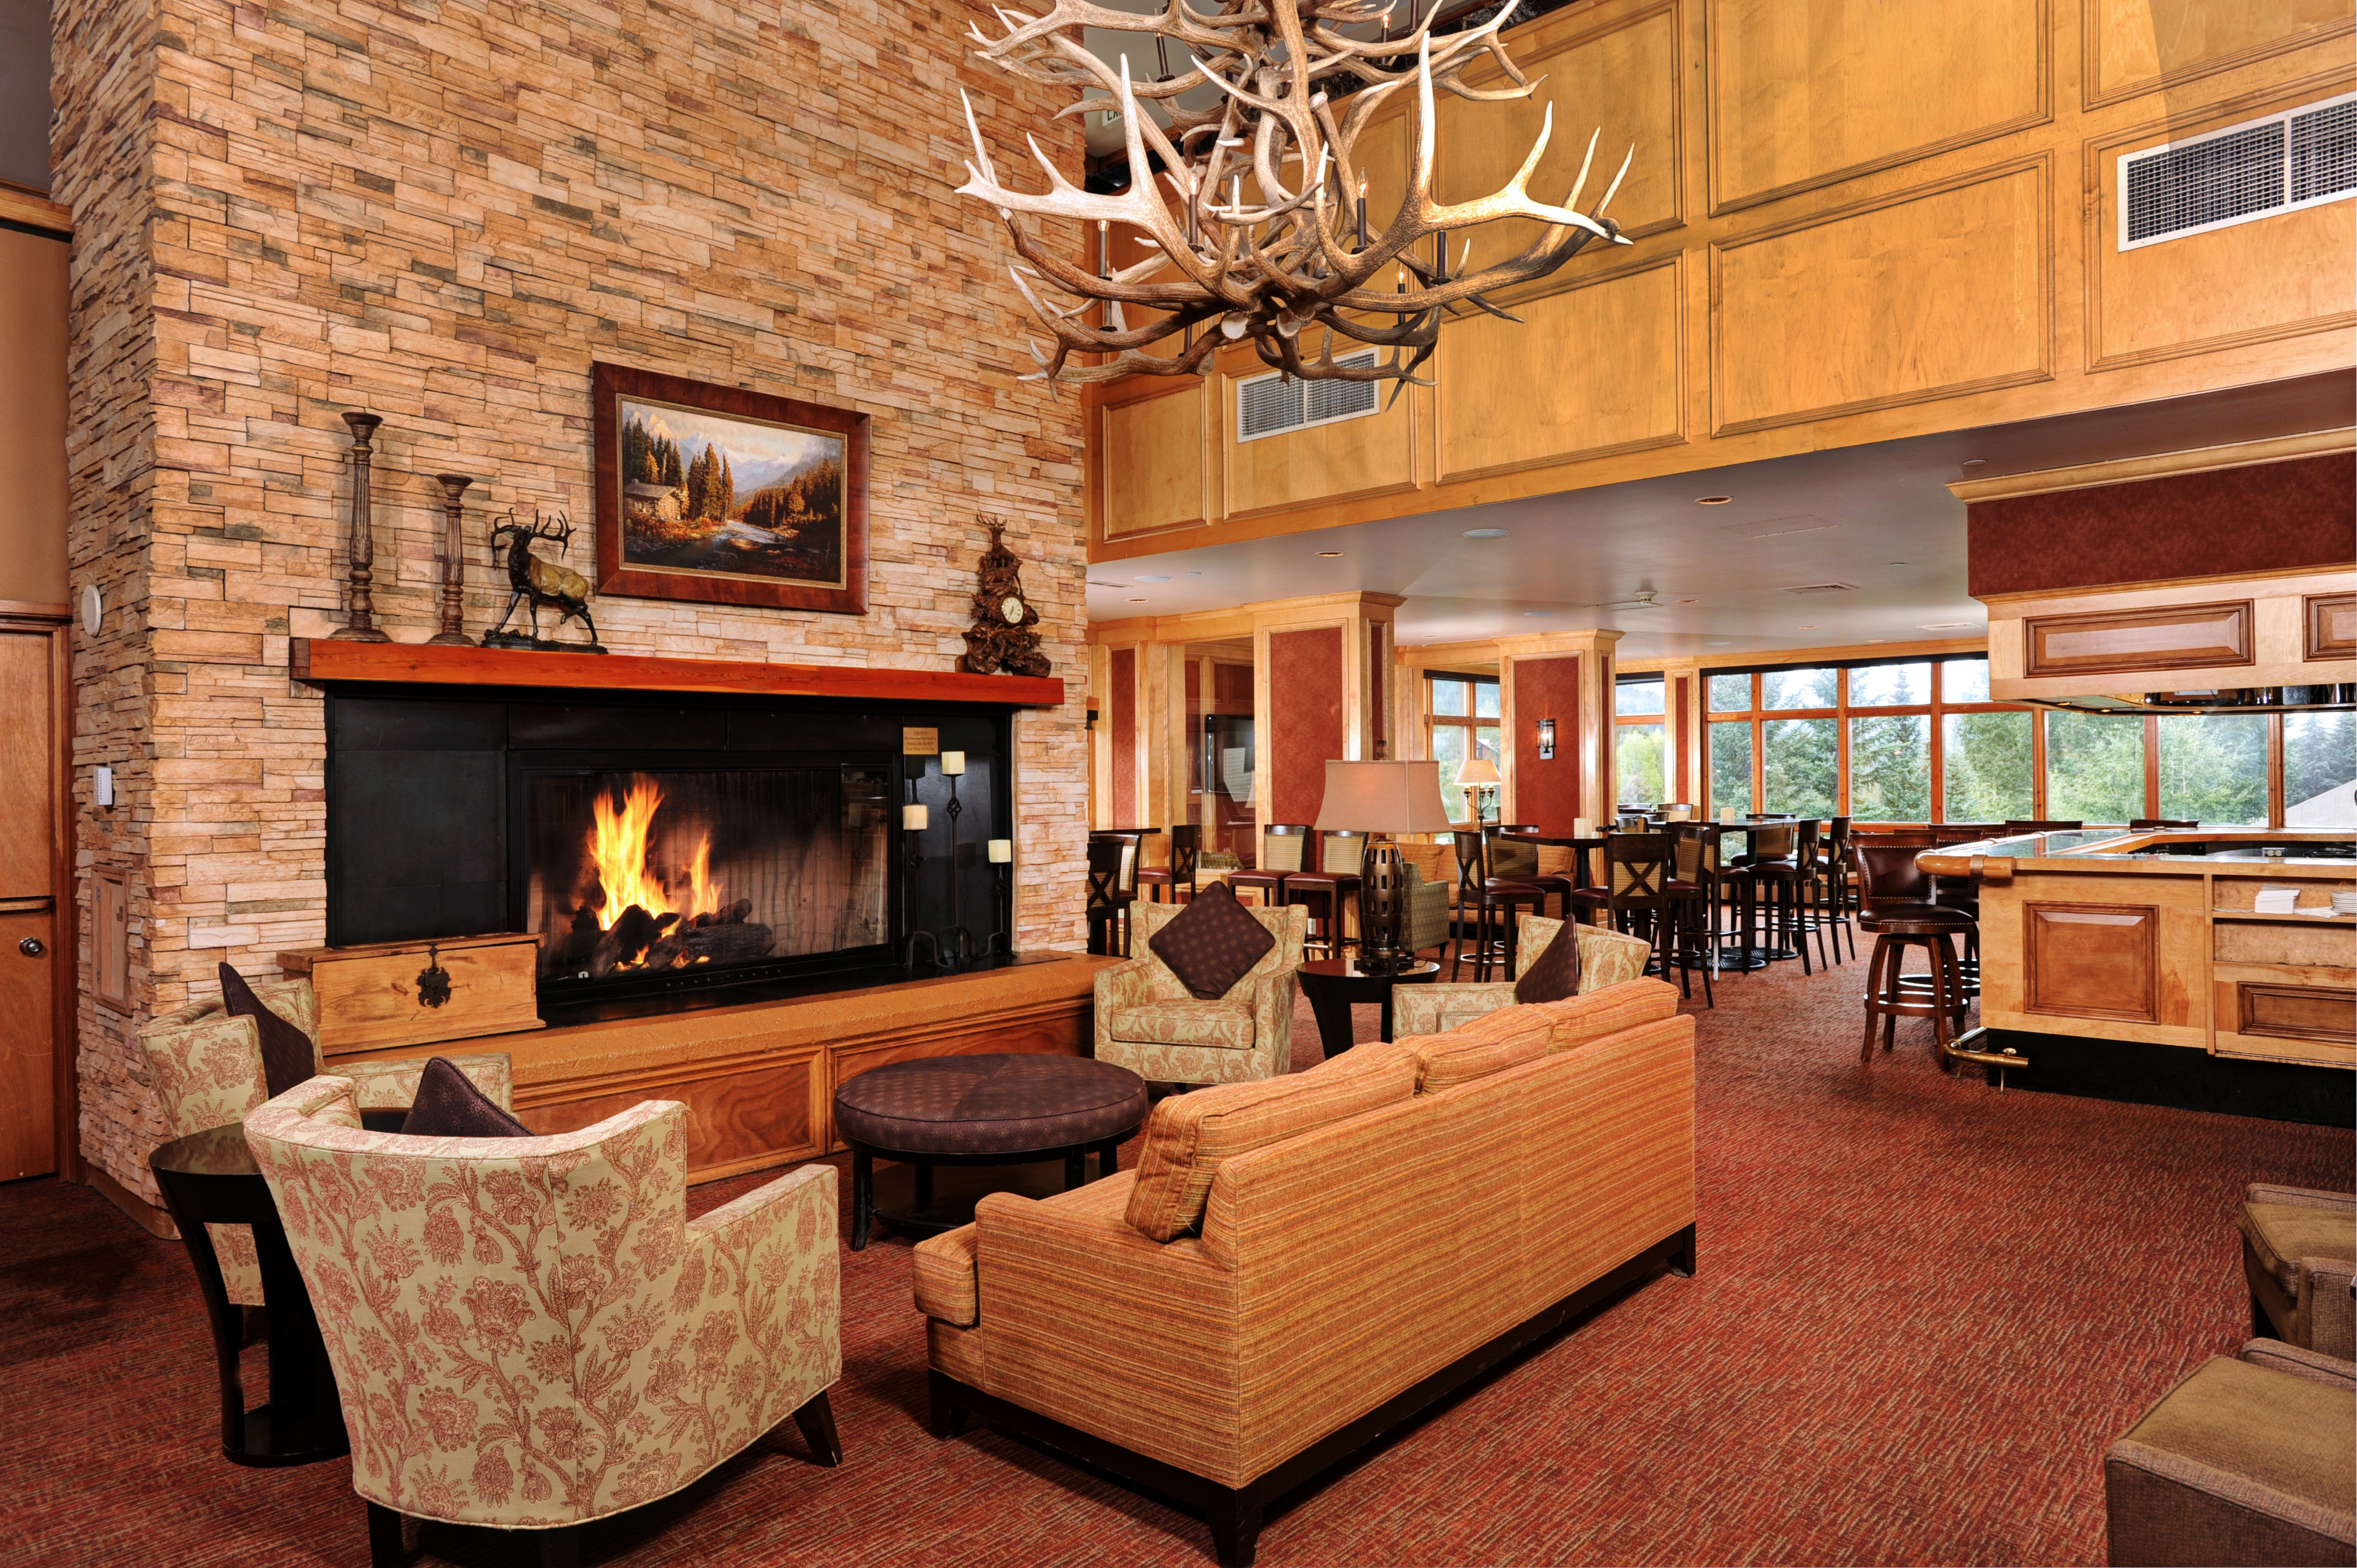 Fireplace Lodge Lounge Rustic property living room fire home recreation room cottage